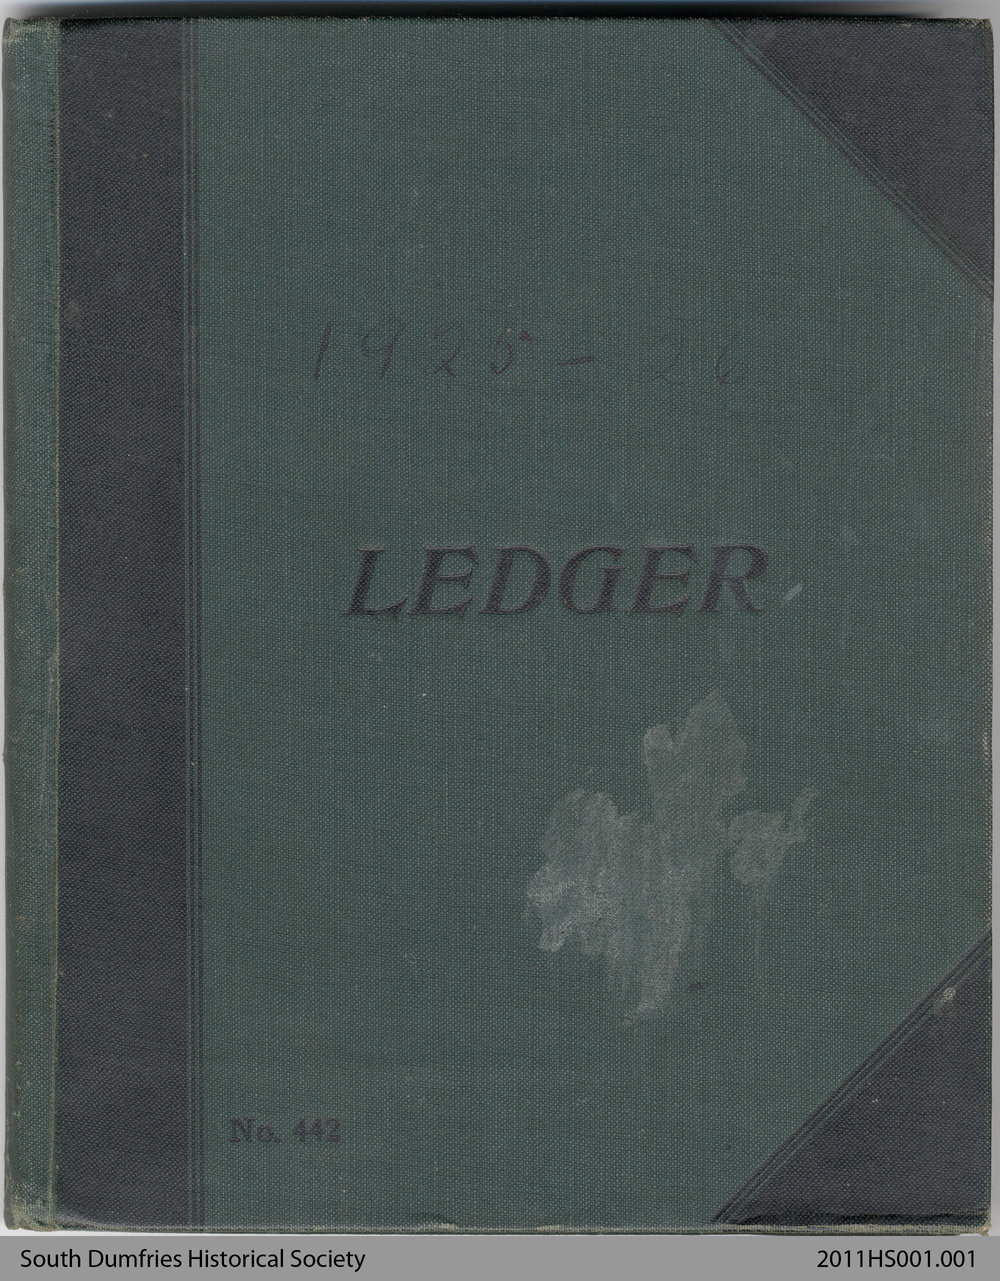 Ledger Book, 1925-26